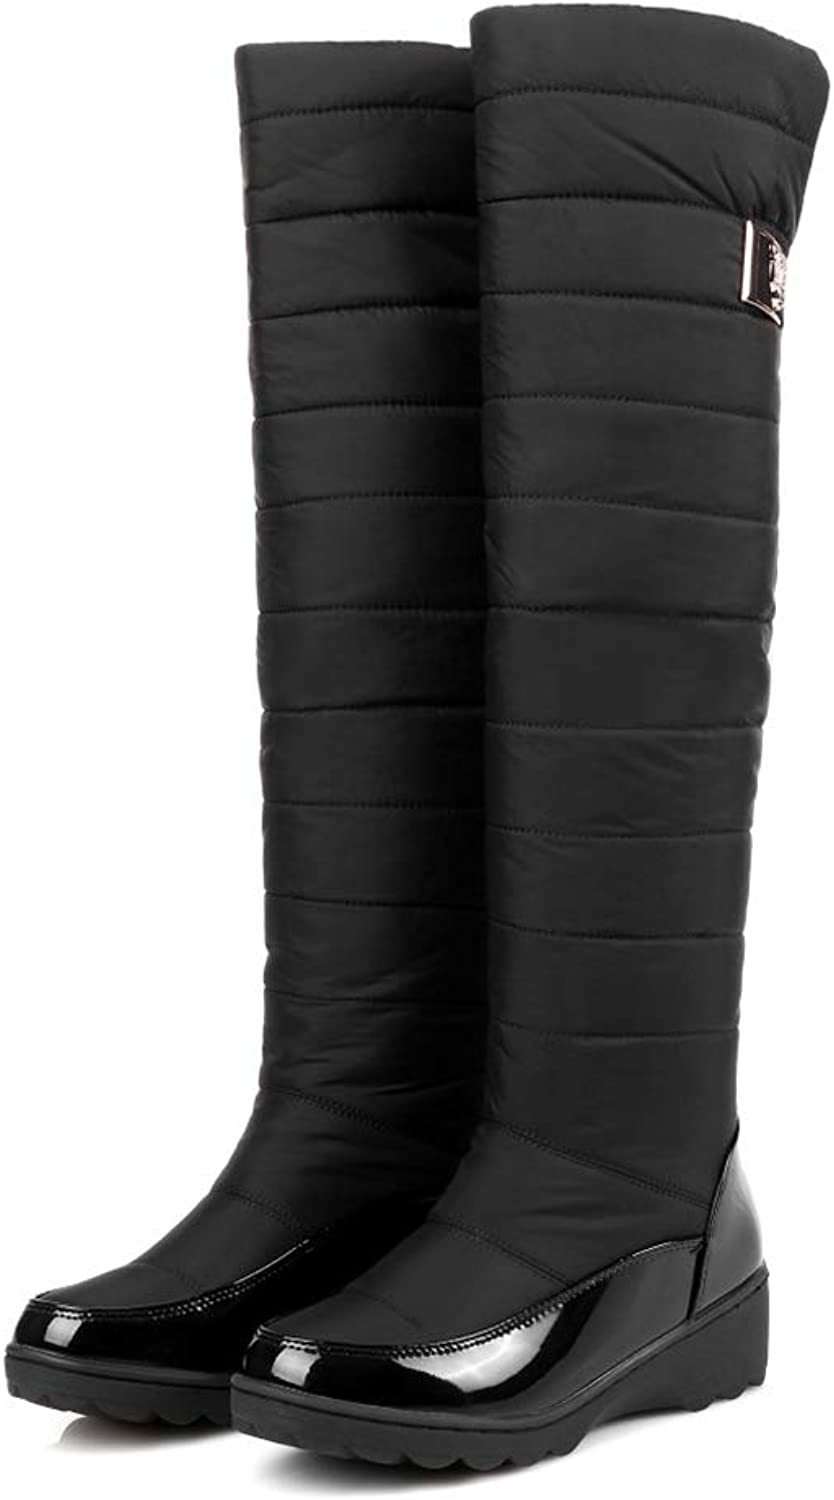 Hoxekle Women Winter Warm Waterproof Snow Boots Platforms Wedges Heels Fur Cotton shoes Over-The-Knee Long Boots